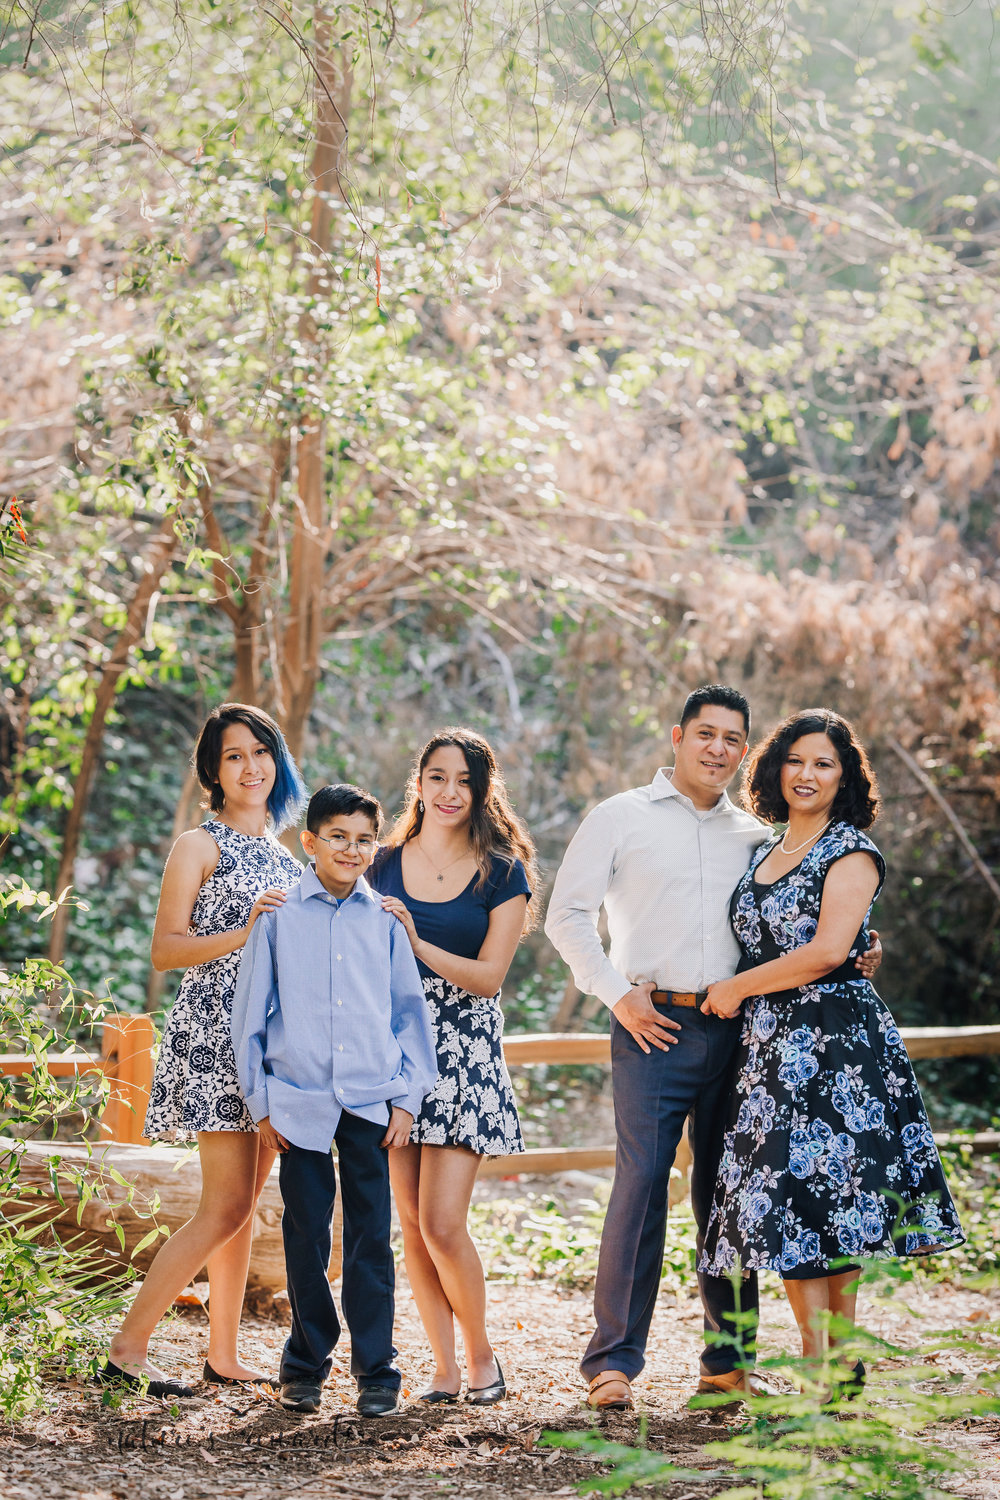 Beautiful family wearing blues and blue florals dresses in this gorgeous family photography portrait by Nature's Reward Photography.